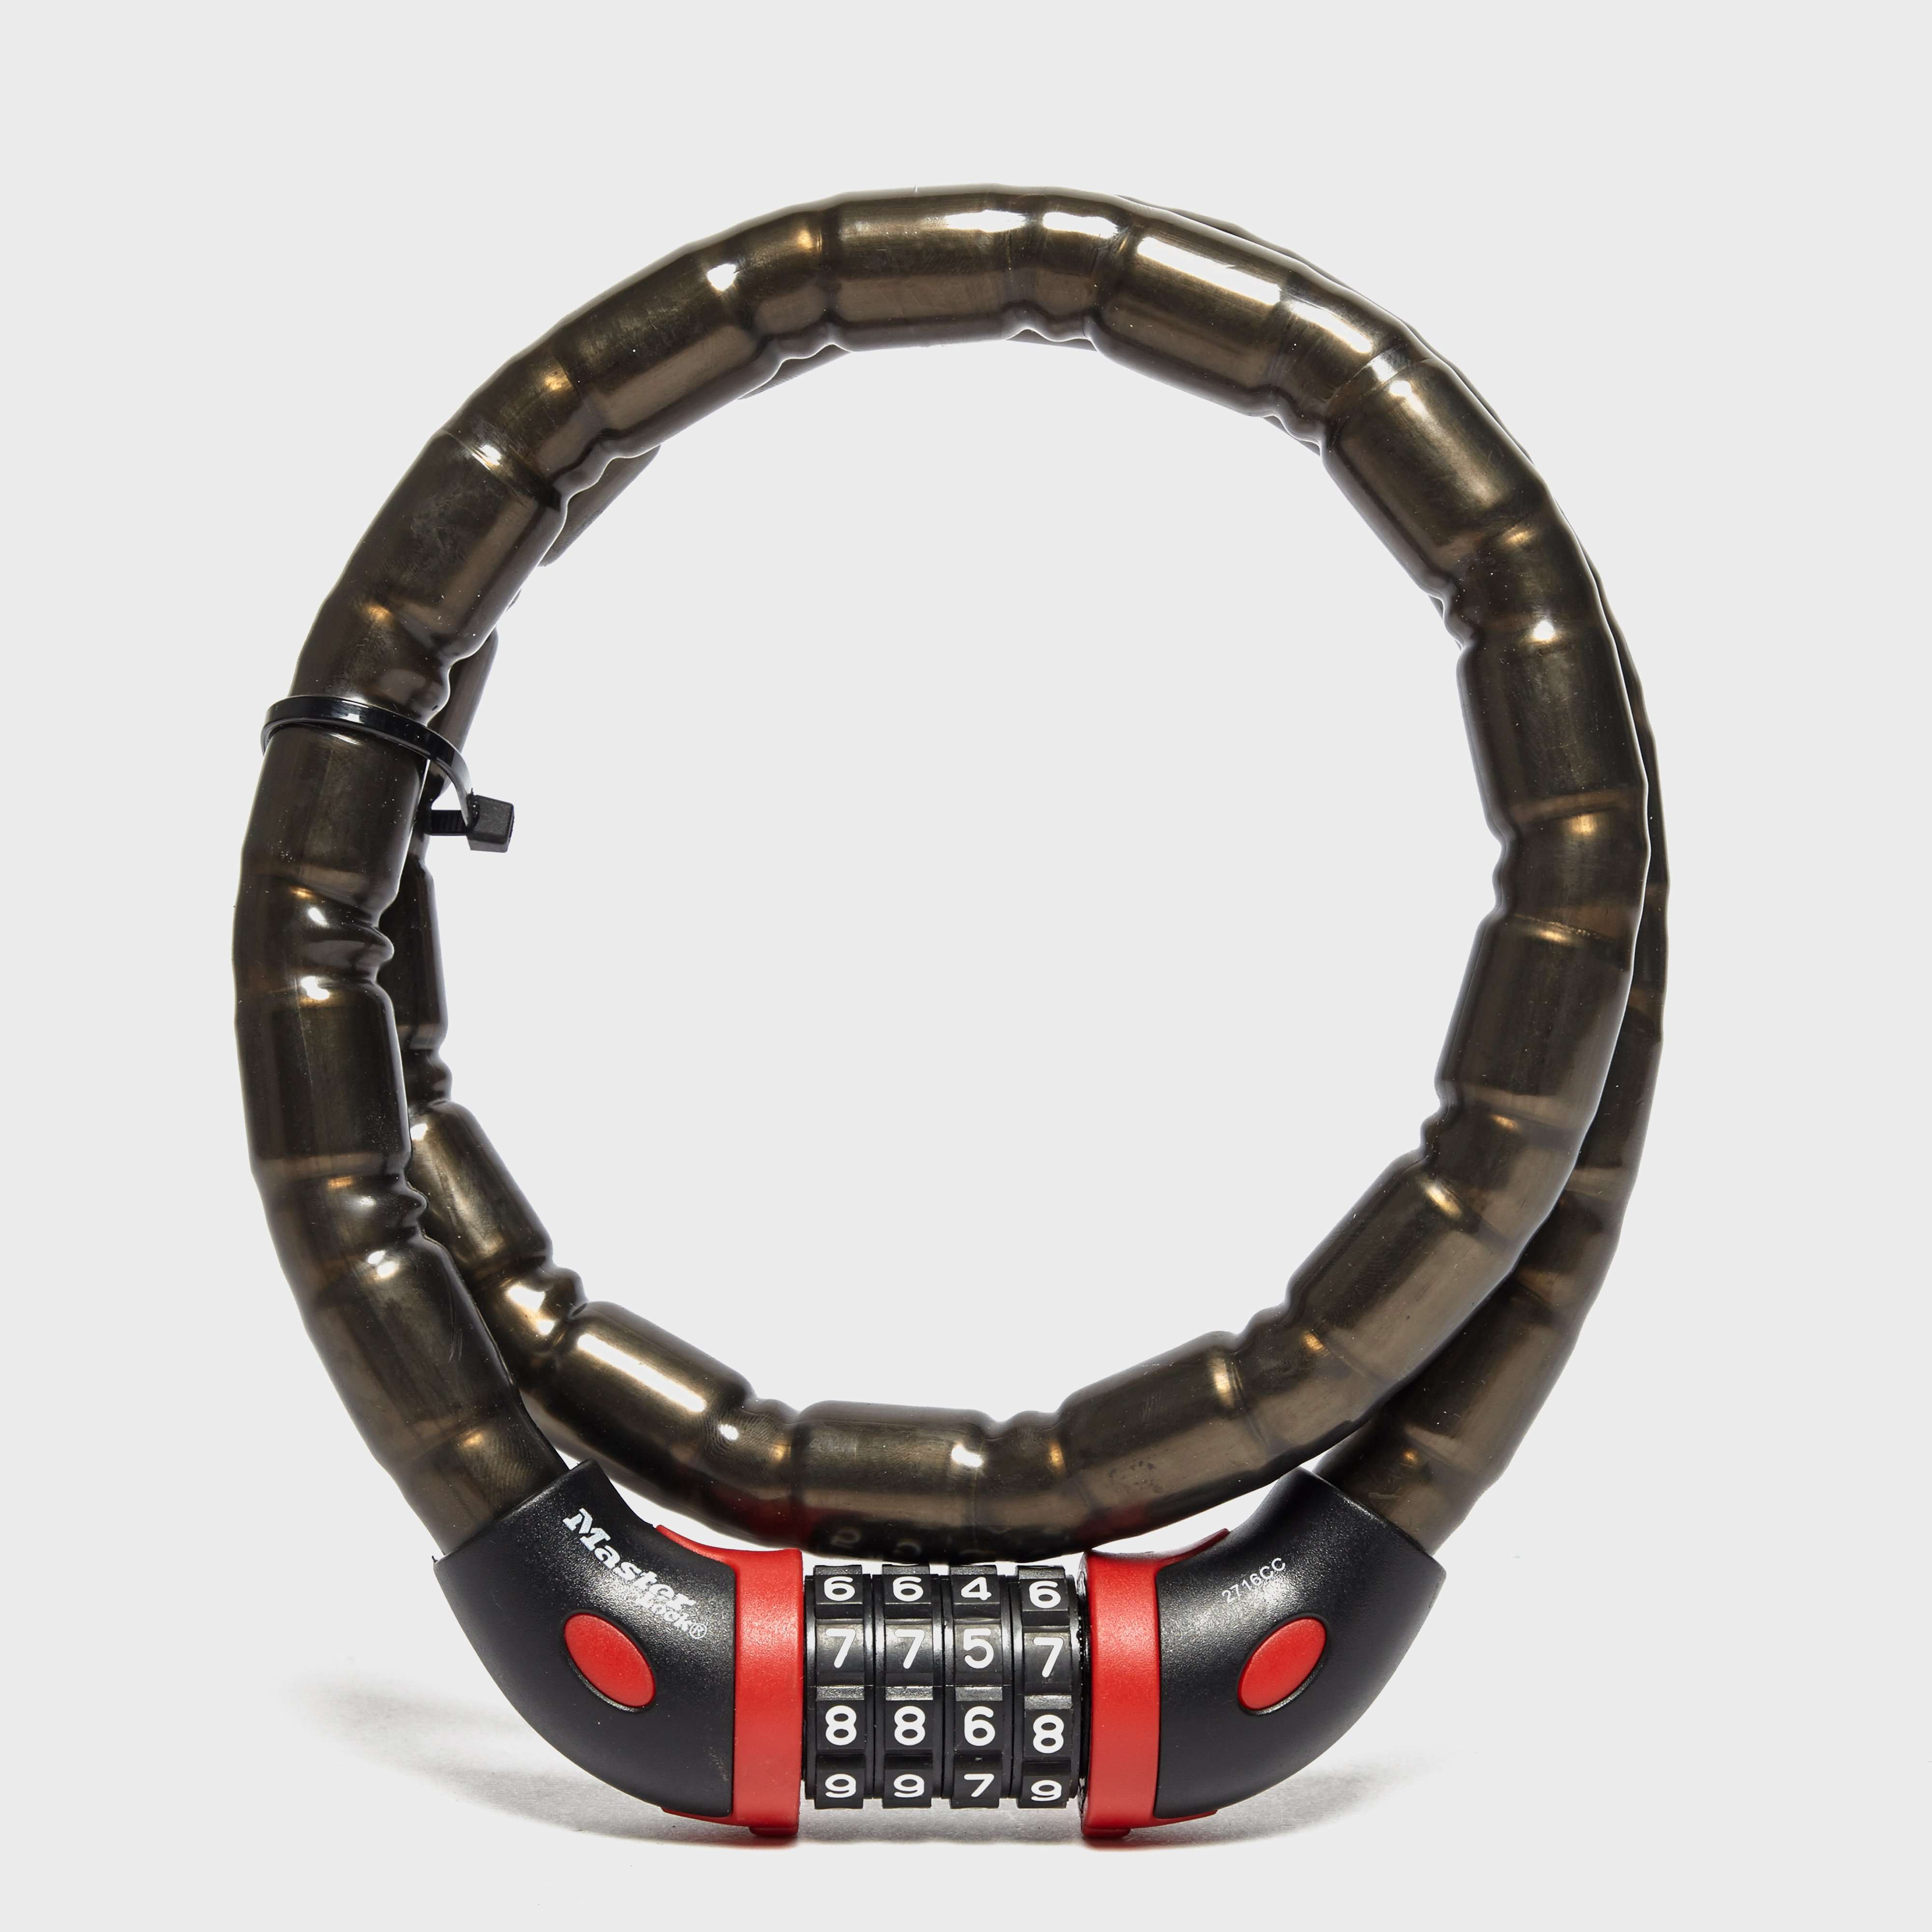 MASTERLOCK Four-Digit Combination Lock and Bracelet